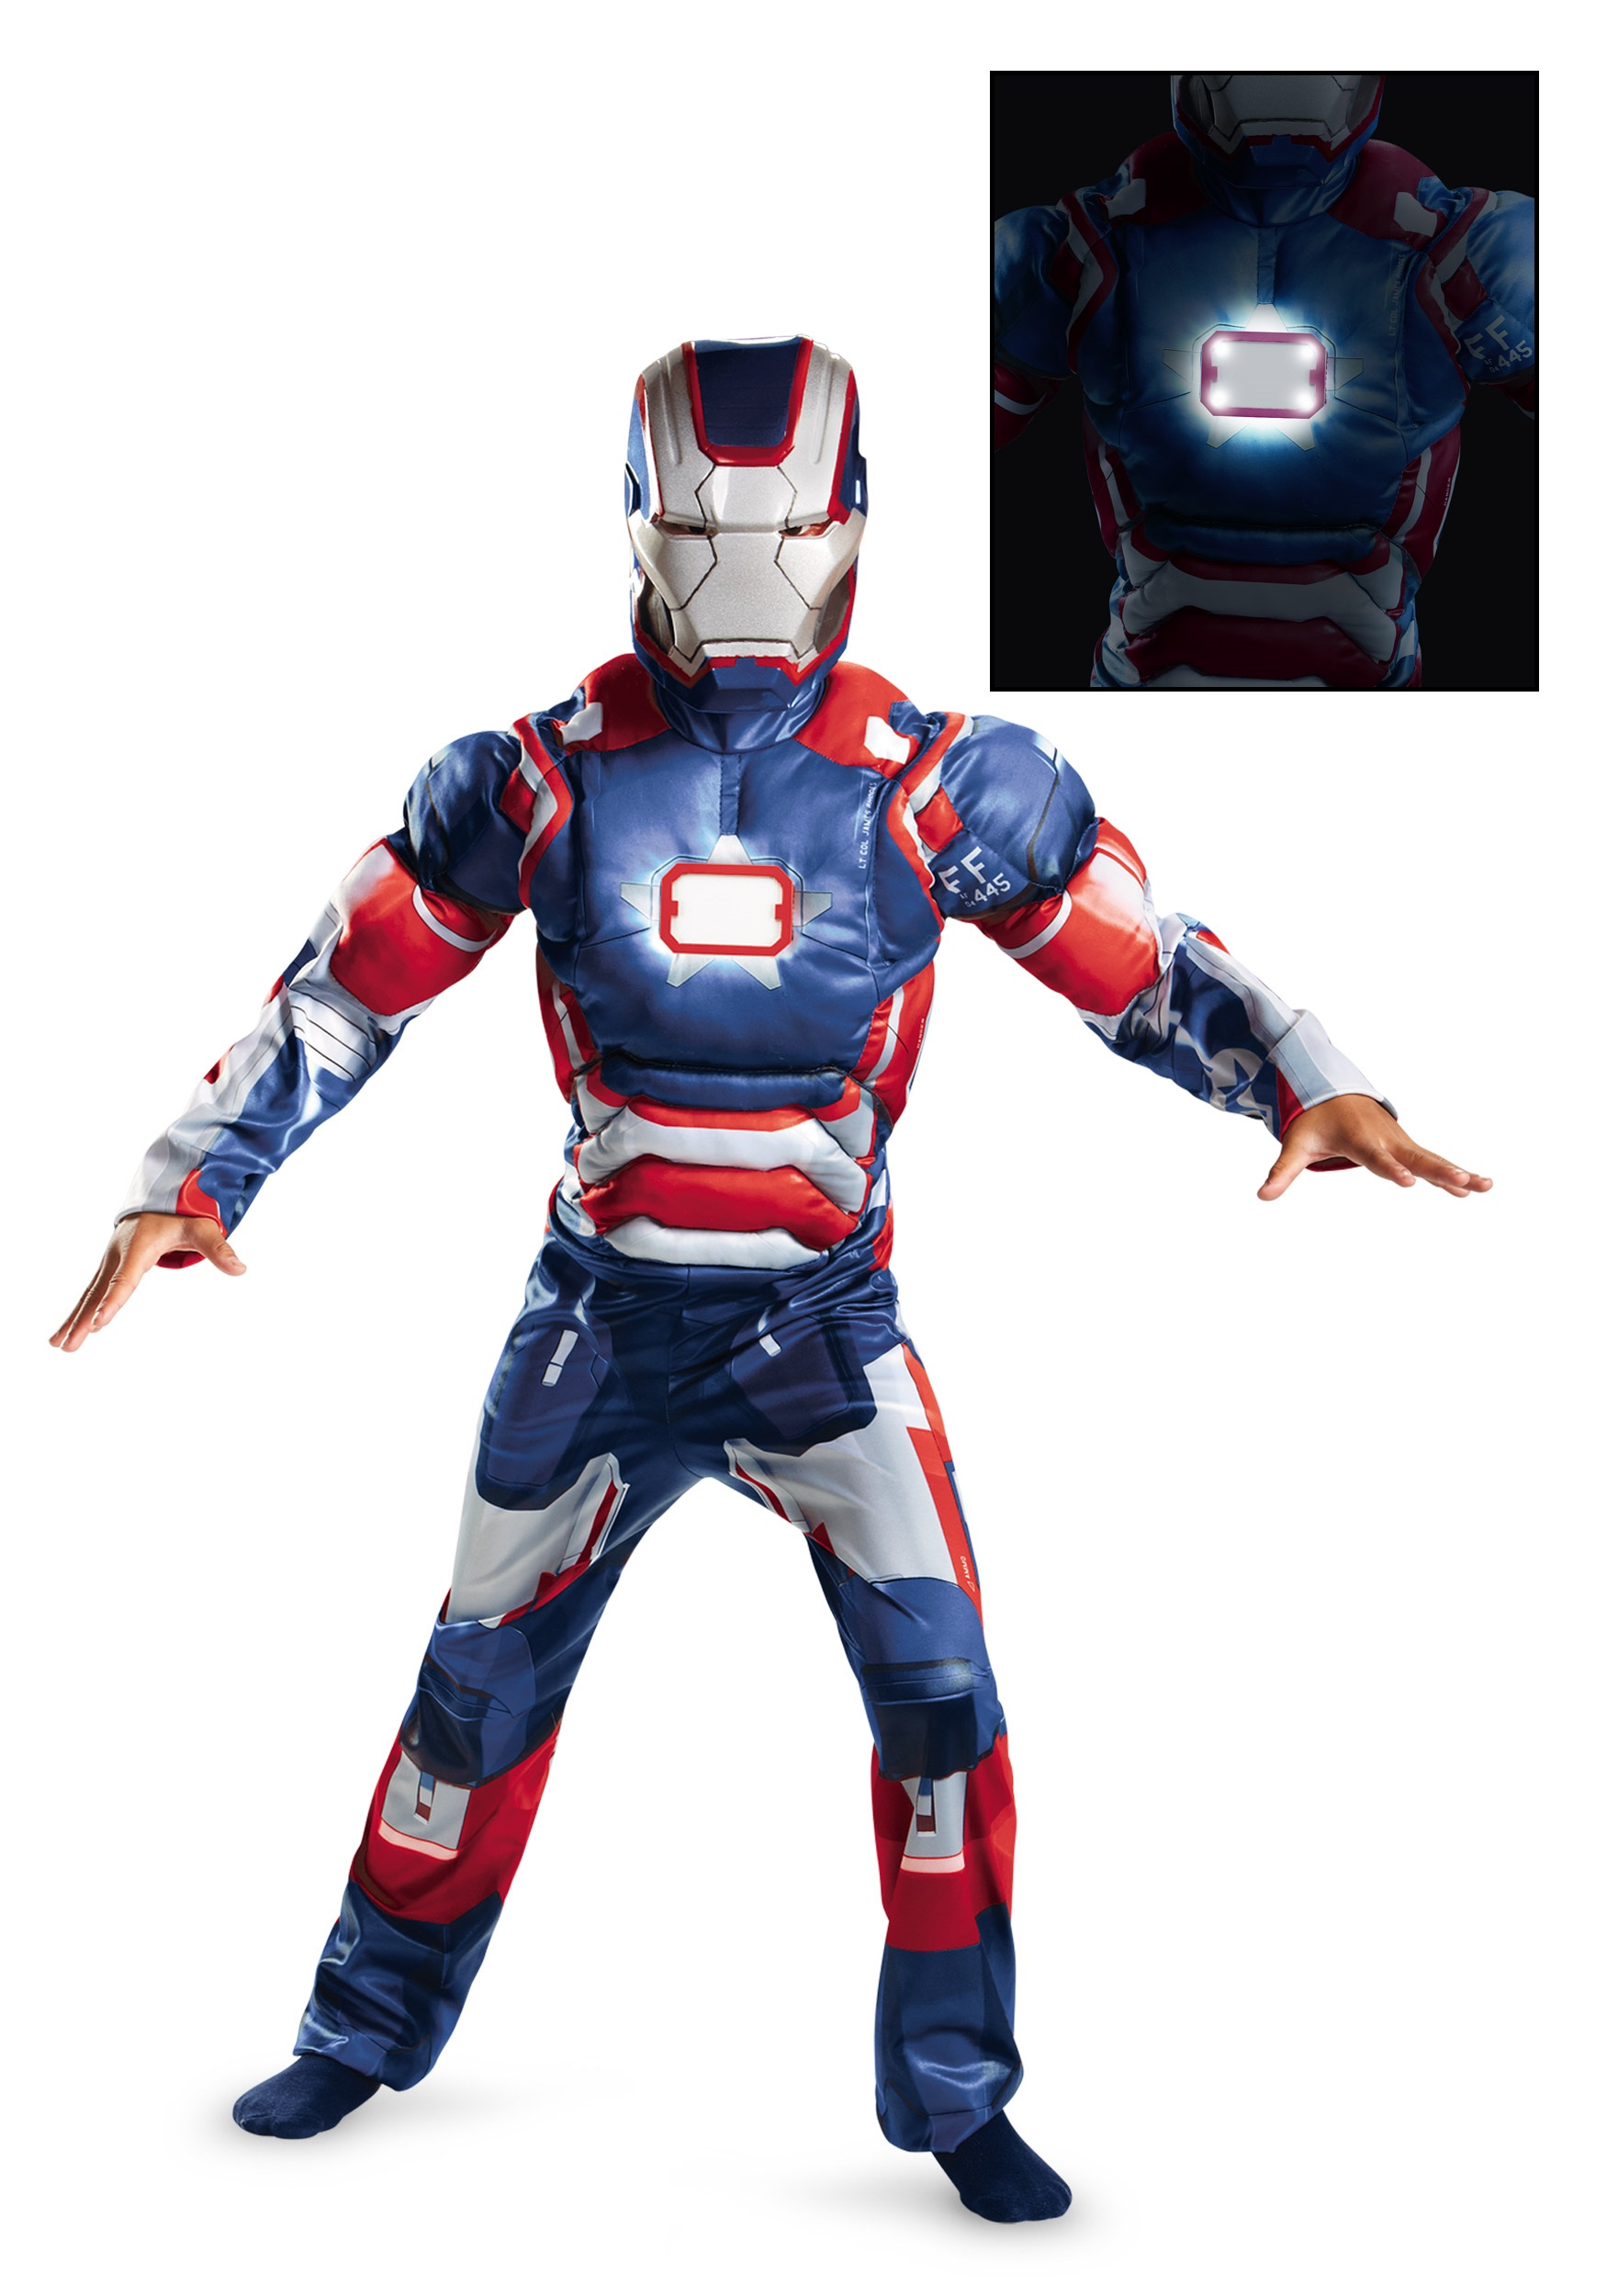 Kids Iron Patriot Muscle Light Up Costume  sc 1 st  Halloween Costumes & Kids Iron Patriot Muscle Light Up Costume - Halloween Costume Ideas 2018